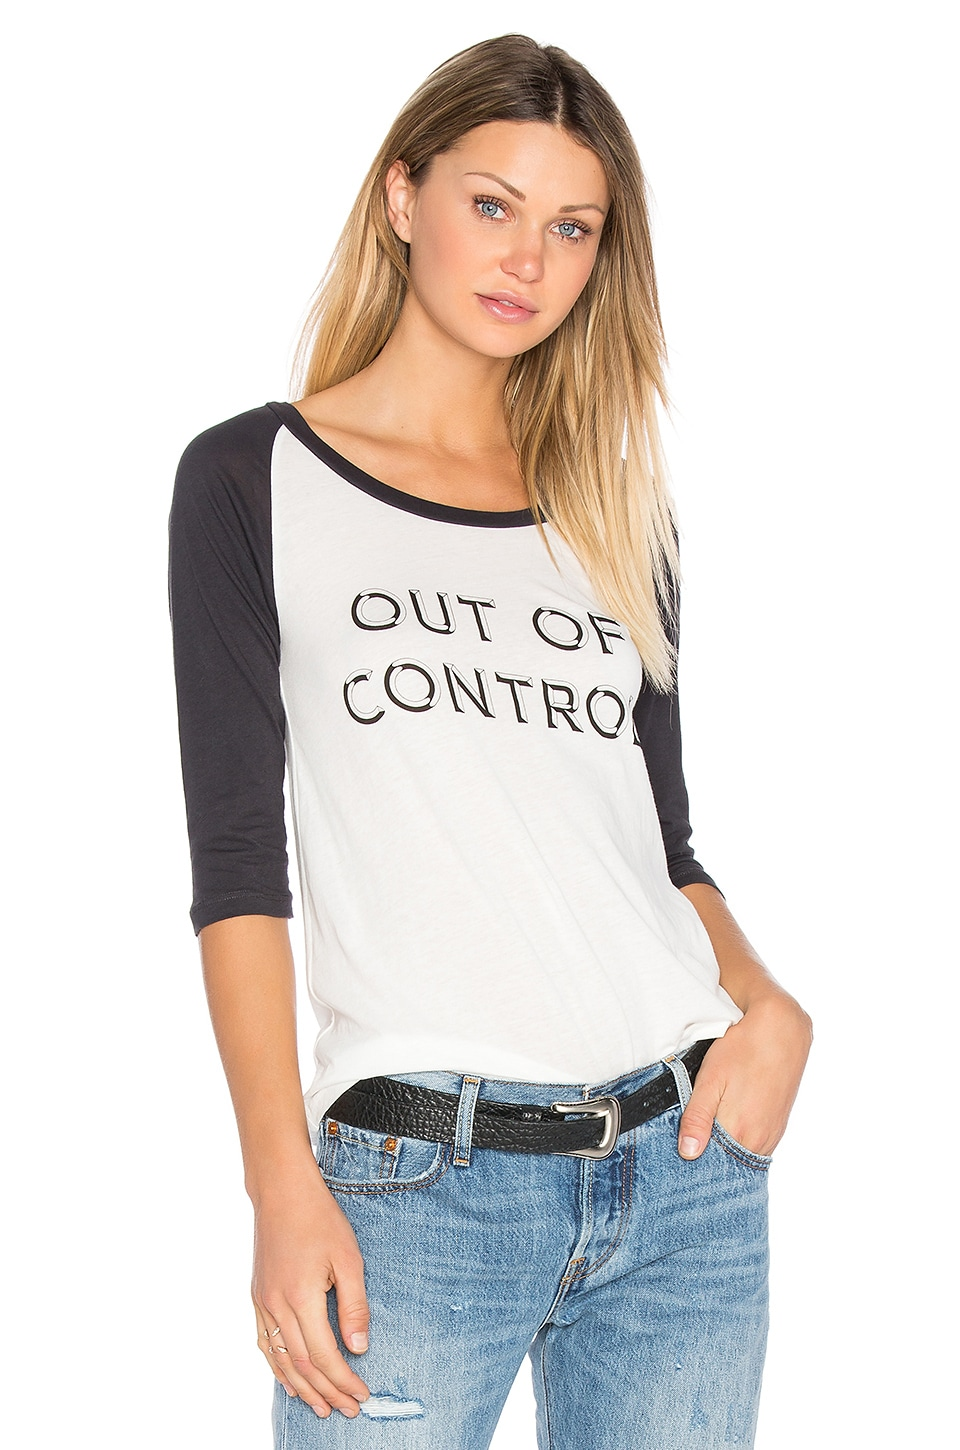 Out Of Control Baseball Tee by Clayton